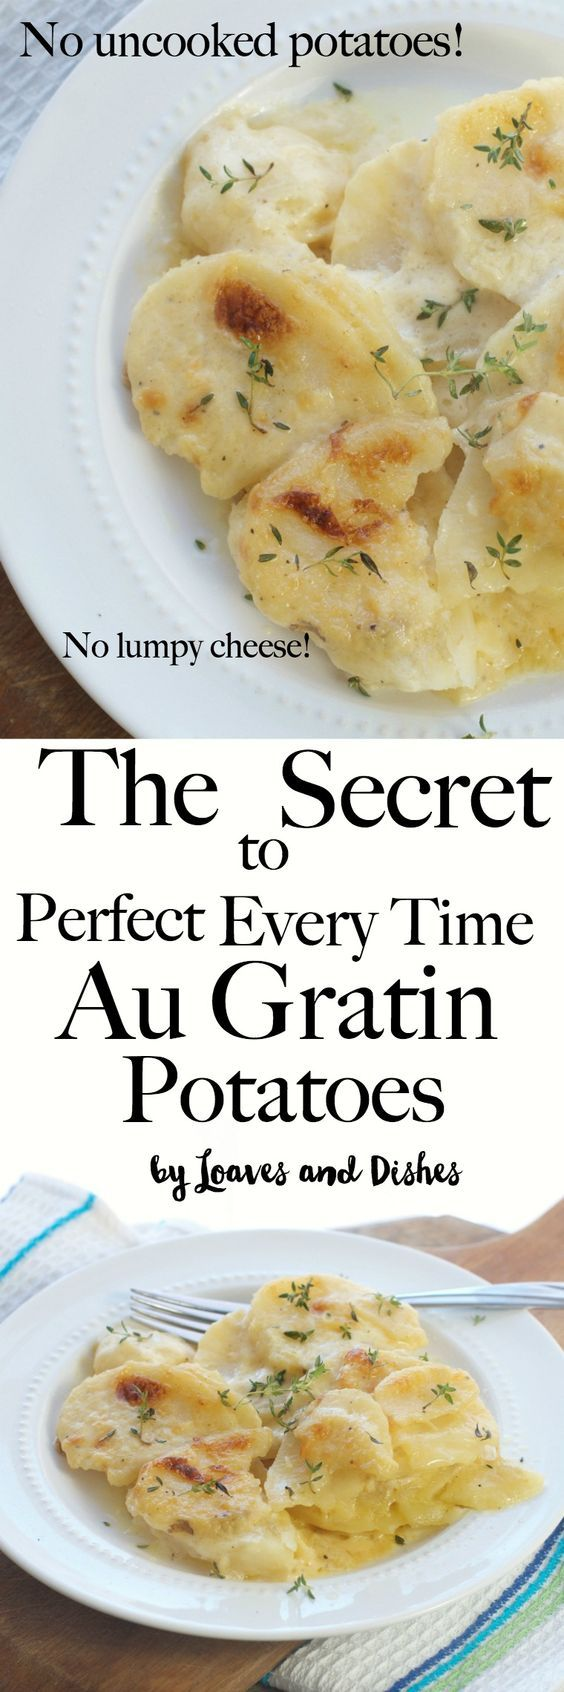 Easy Homemade Au Gratin Potatoes that are perfect every time. No undercooked potatoes. No clumpy cheese. Better than Pioneer Woman, Ina Garten, Ruth Chris and Paula Deen combined. You could add ham or make in the crockpot. Homemade is healthy and the best, right? via @loavesanddishes